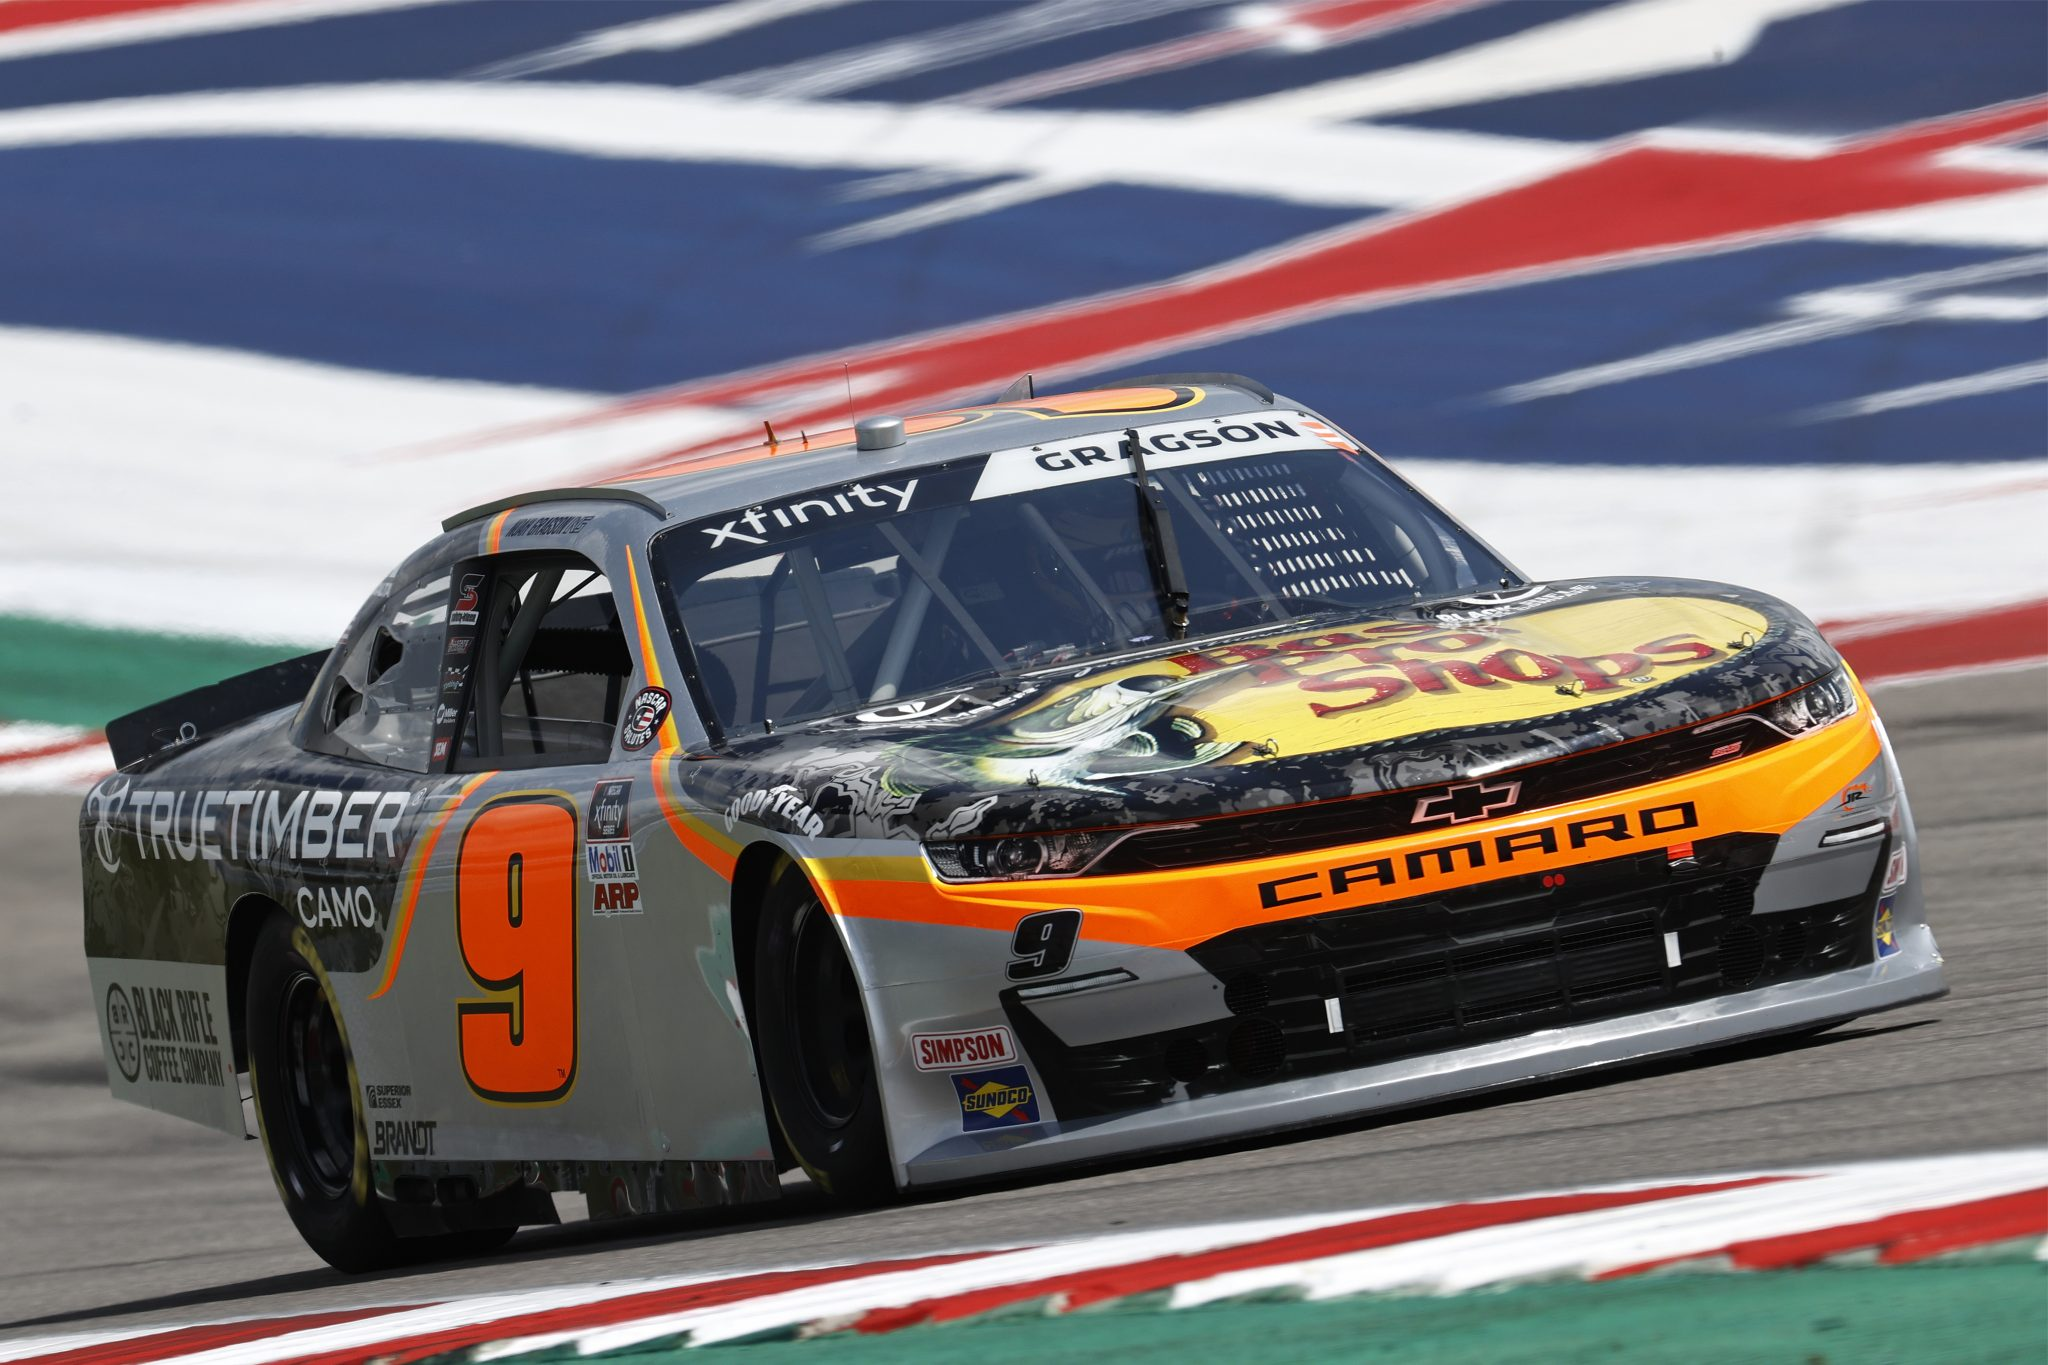 AUSTIN, TEXAS - MAY 21: Noah Gragson, driver of the #9 Bass Pro Shops/TrueTimber/BRCC Chevrolet, drives during practice for the NASCAR Xfinity Series Pit Boss 250 at Circuit of The Americas on May 21, 2021 in Austin, Texas. (Photo by Chris Graythen/Getty Images) | Getty Images